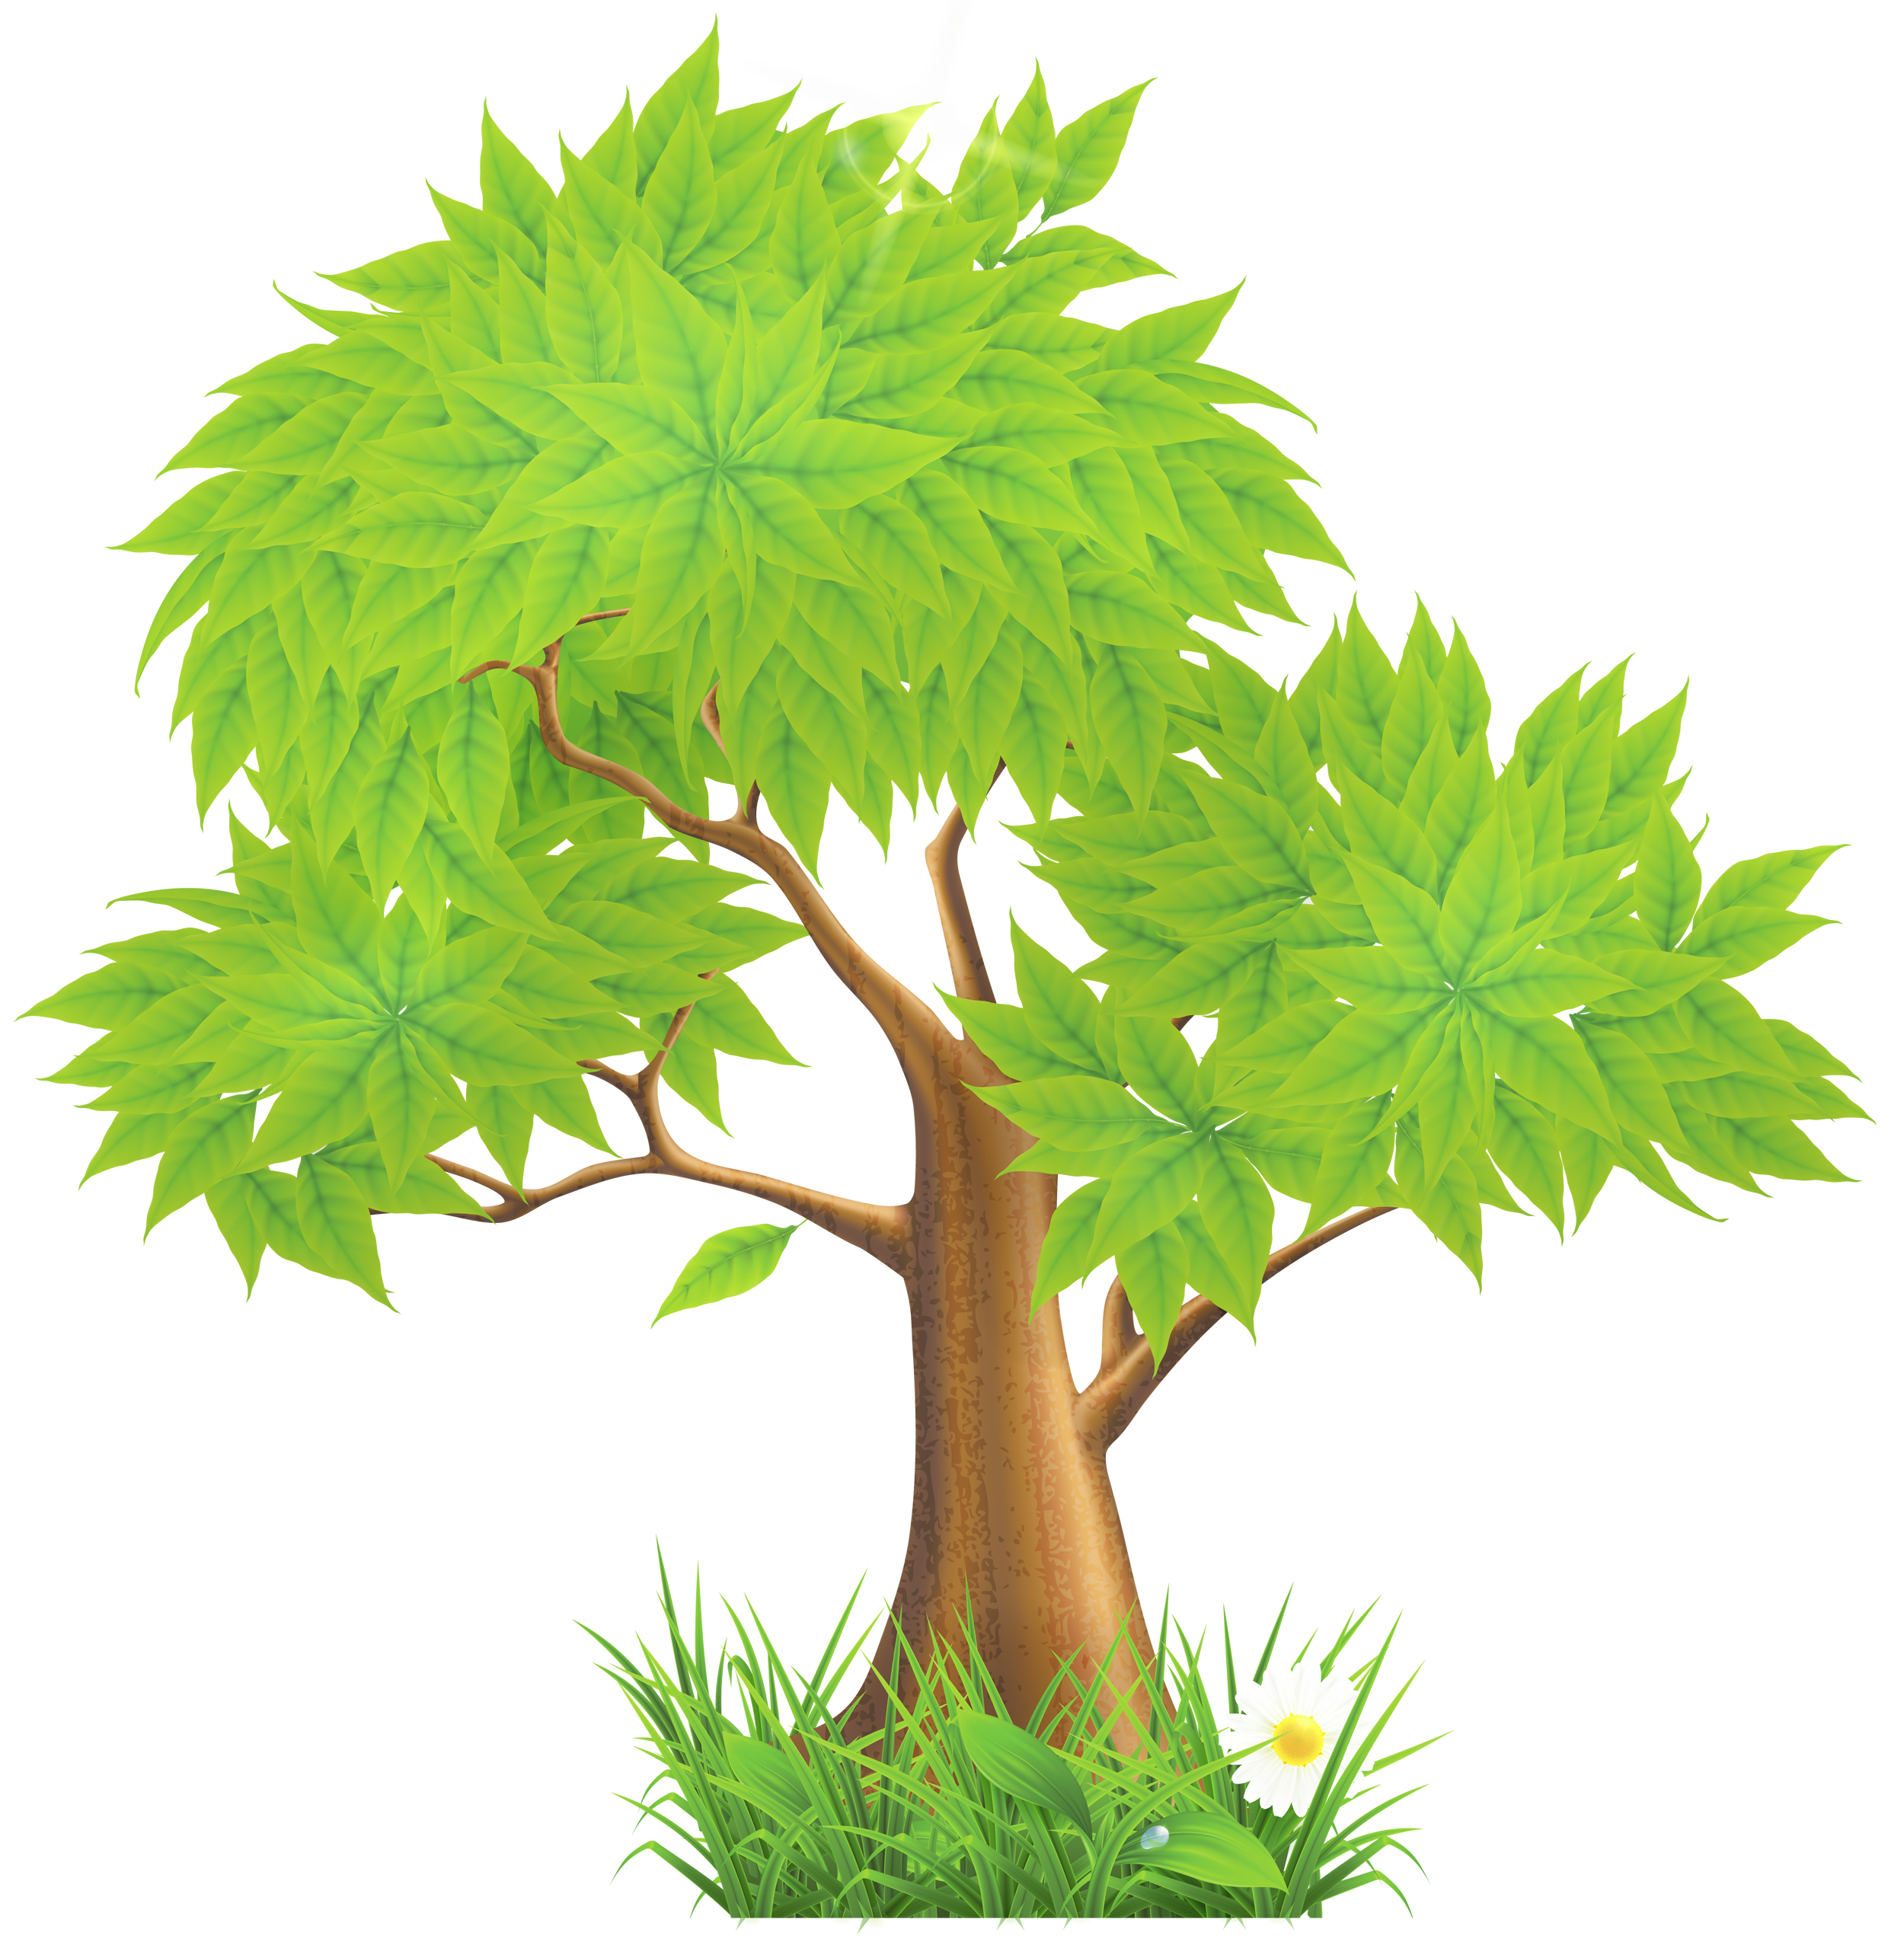 Tree cartoon clipart banner free library Png landscape clipart tree png - ClipartFox banner free library